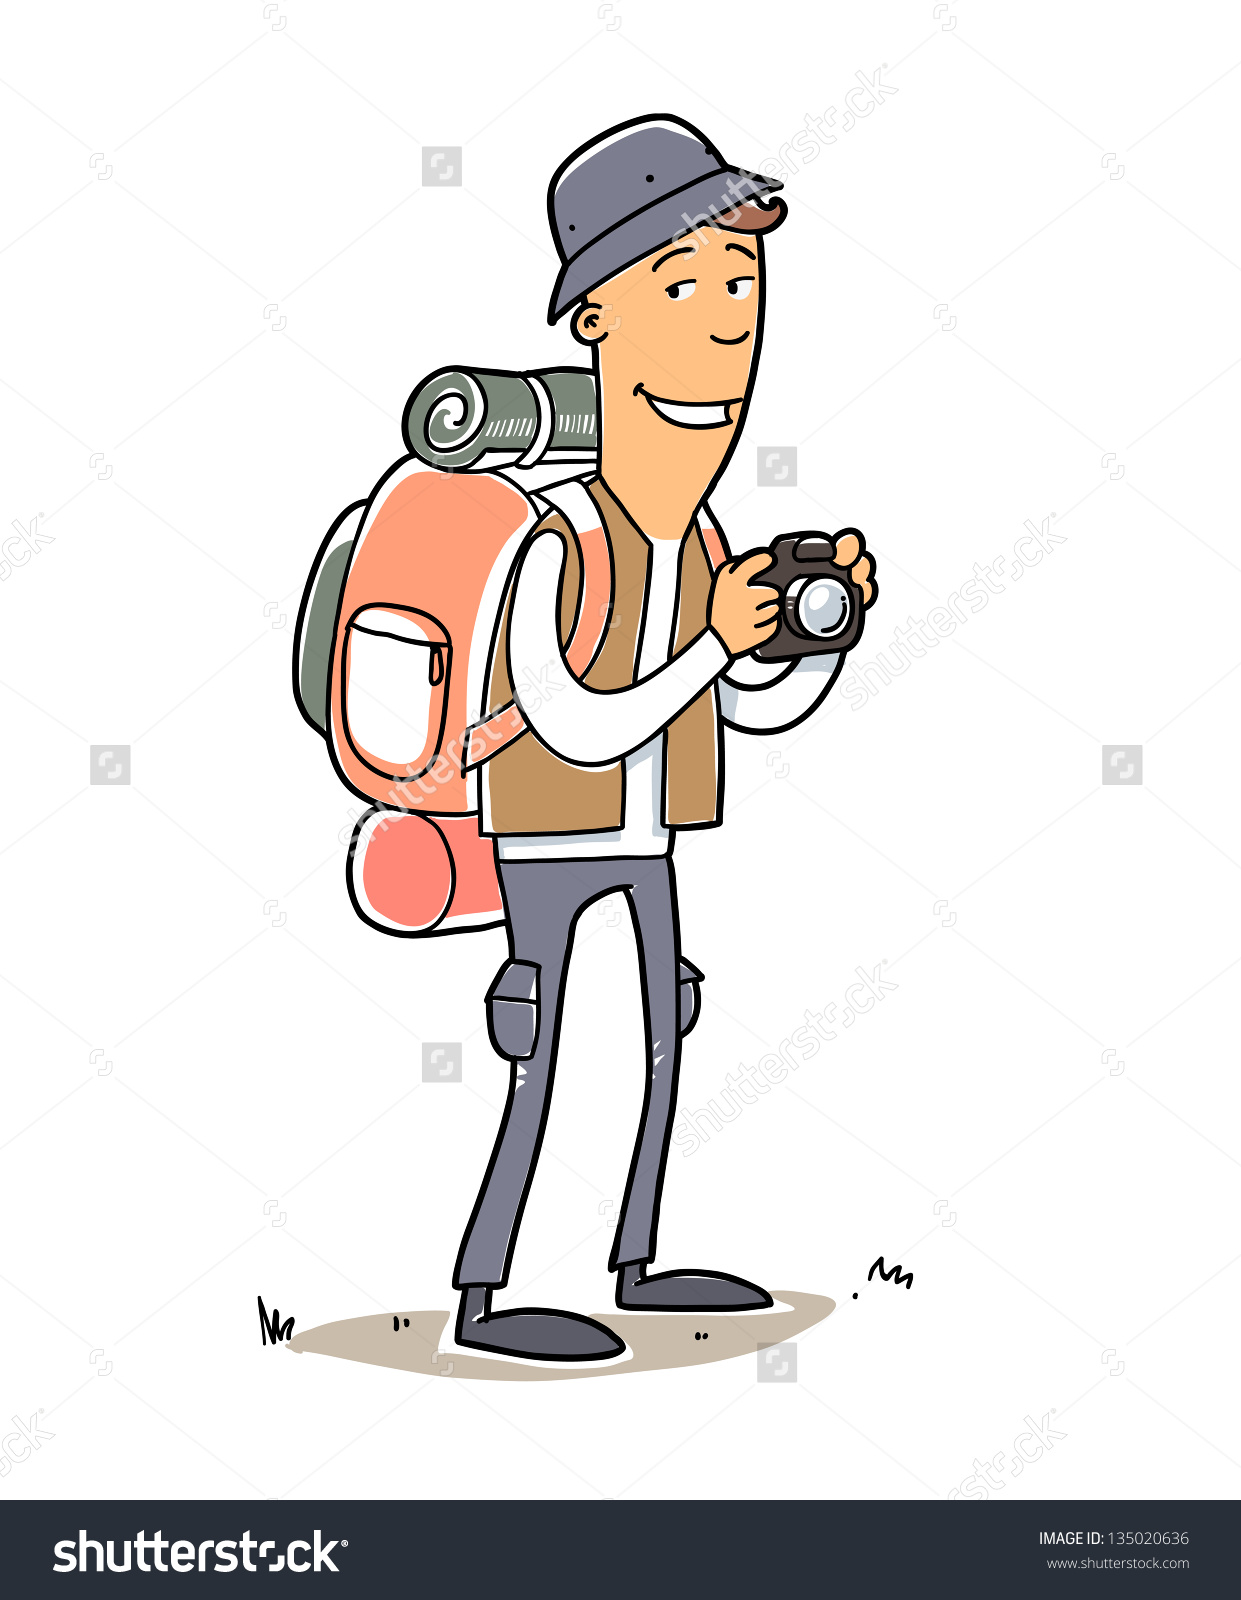 Man Tourist Bag Hat Camera Cartoon Stock Vector 135020636.